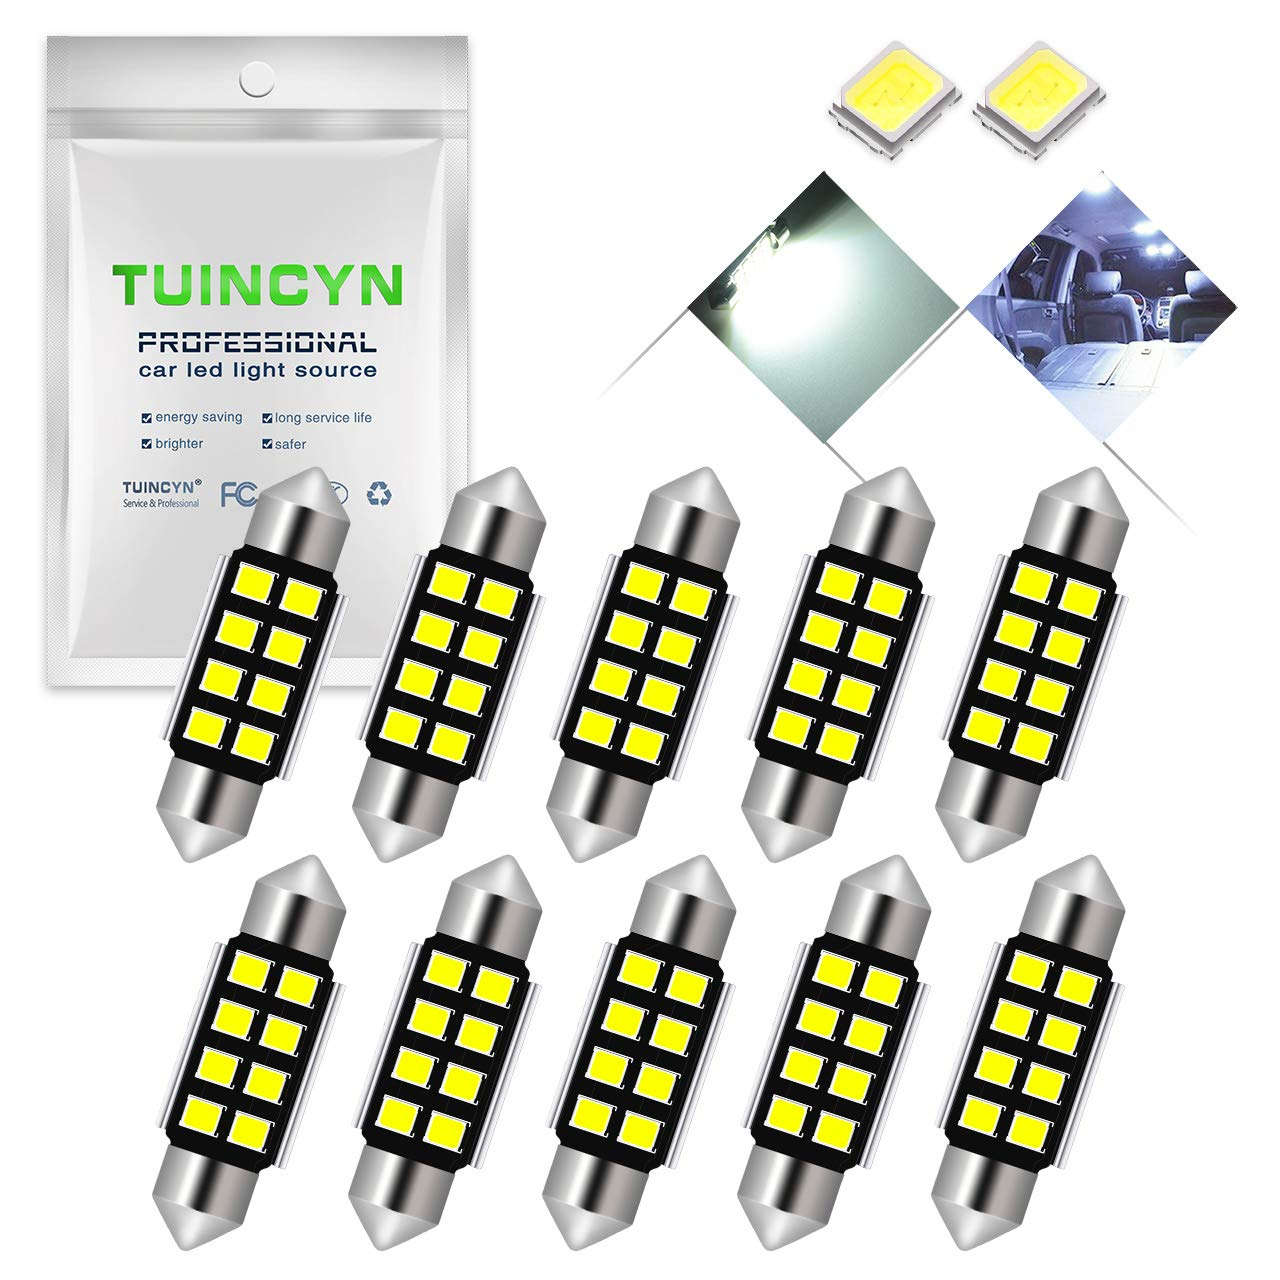 TUINCYN Extremely Bright 39MM Canbus Error Free Festoon LED Bulb 6000K Xenon White 5630-12SMD DE3175 DE3021 DE3022 6428 7065 Car Interior Door Map Dome LED Lights 12V Pack of 10